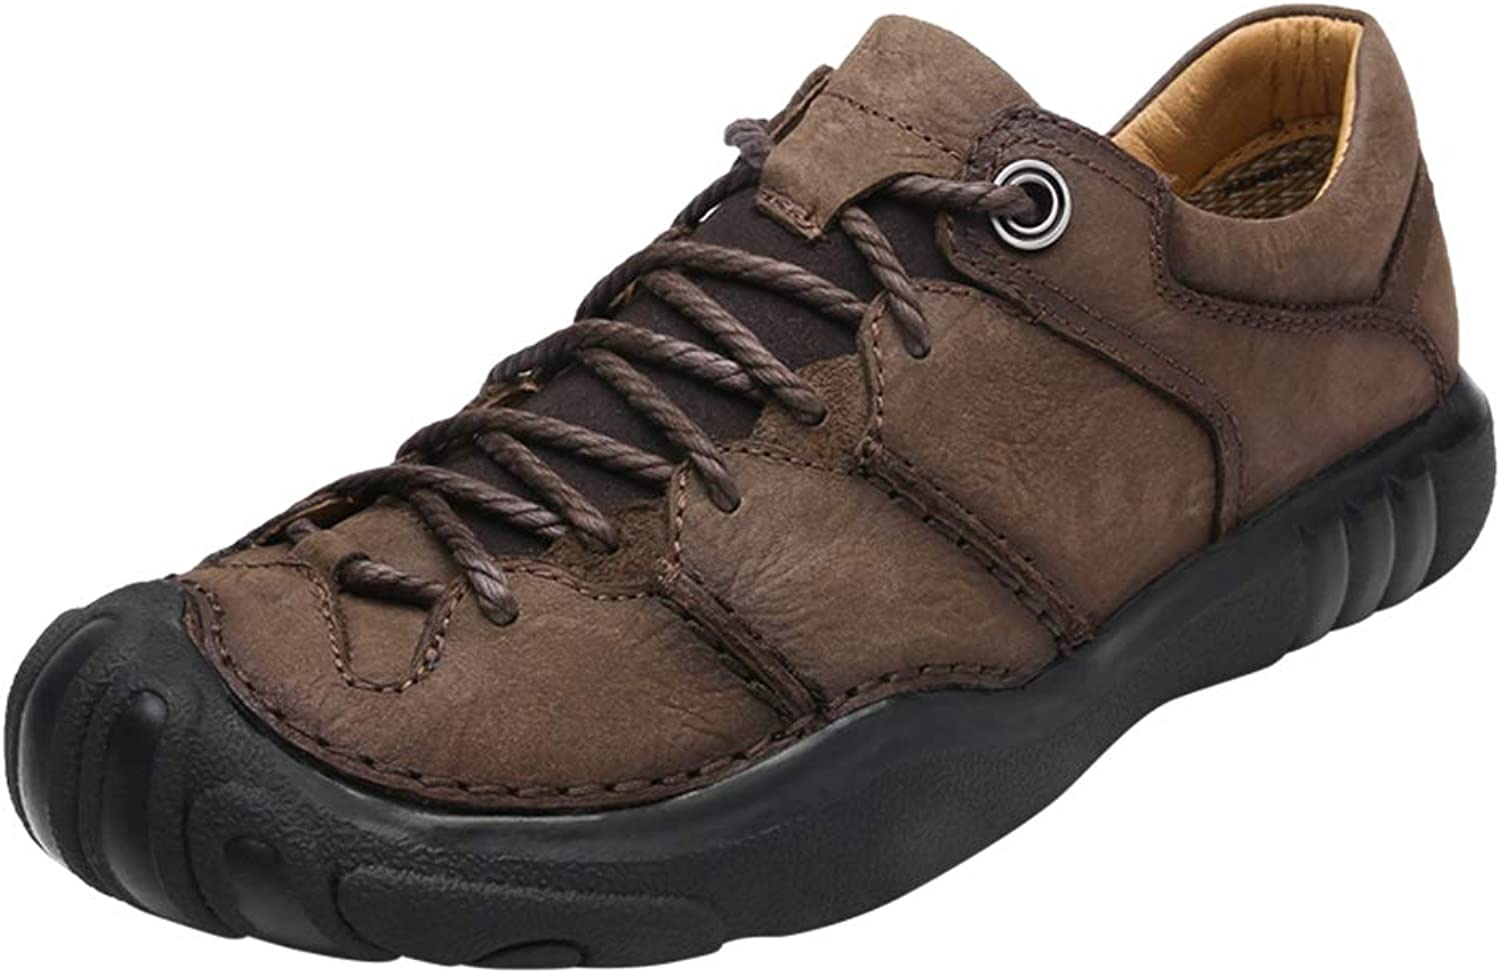 Hiking shoes Trekking Mountain Low Top Lace Up Outdoor Trainers Climbing Boots Men